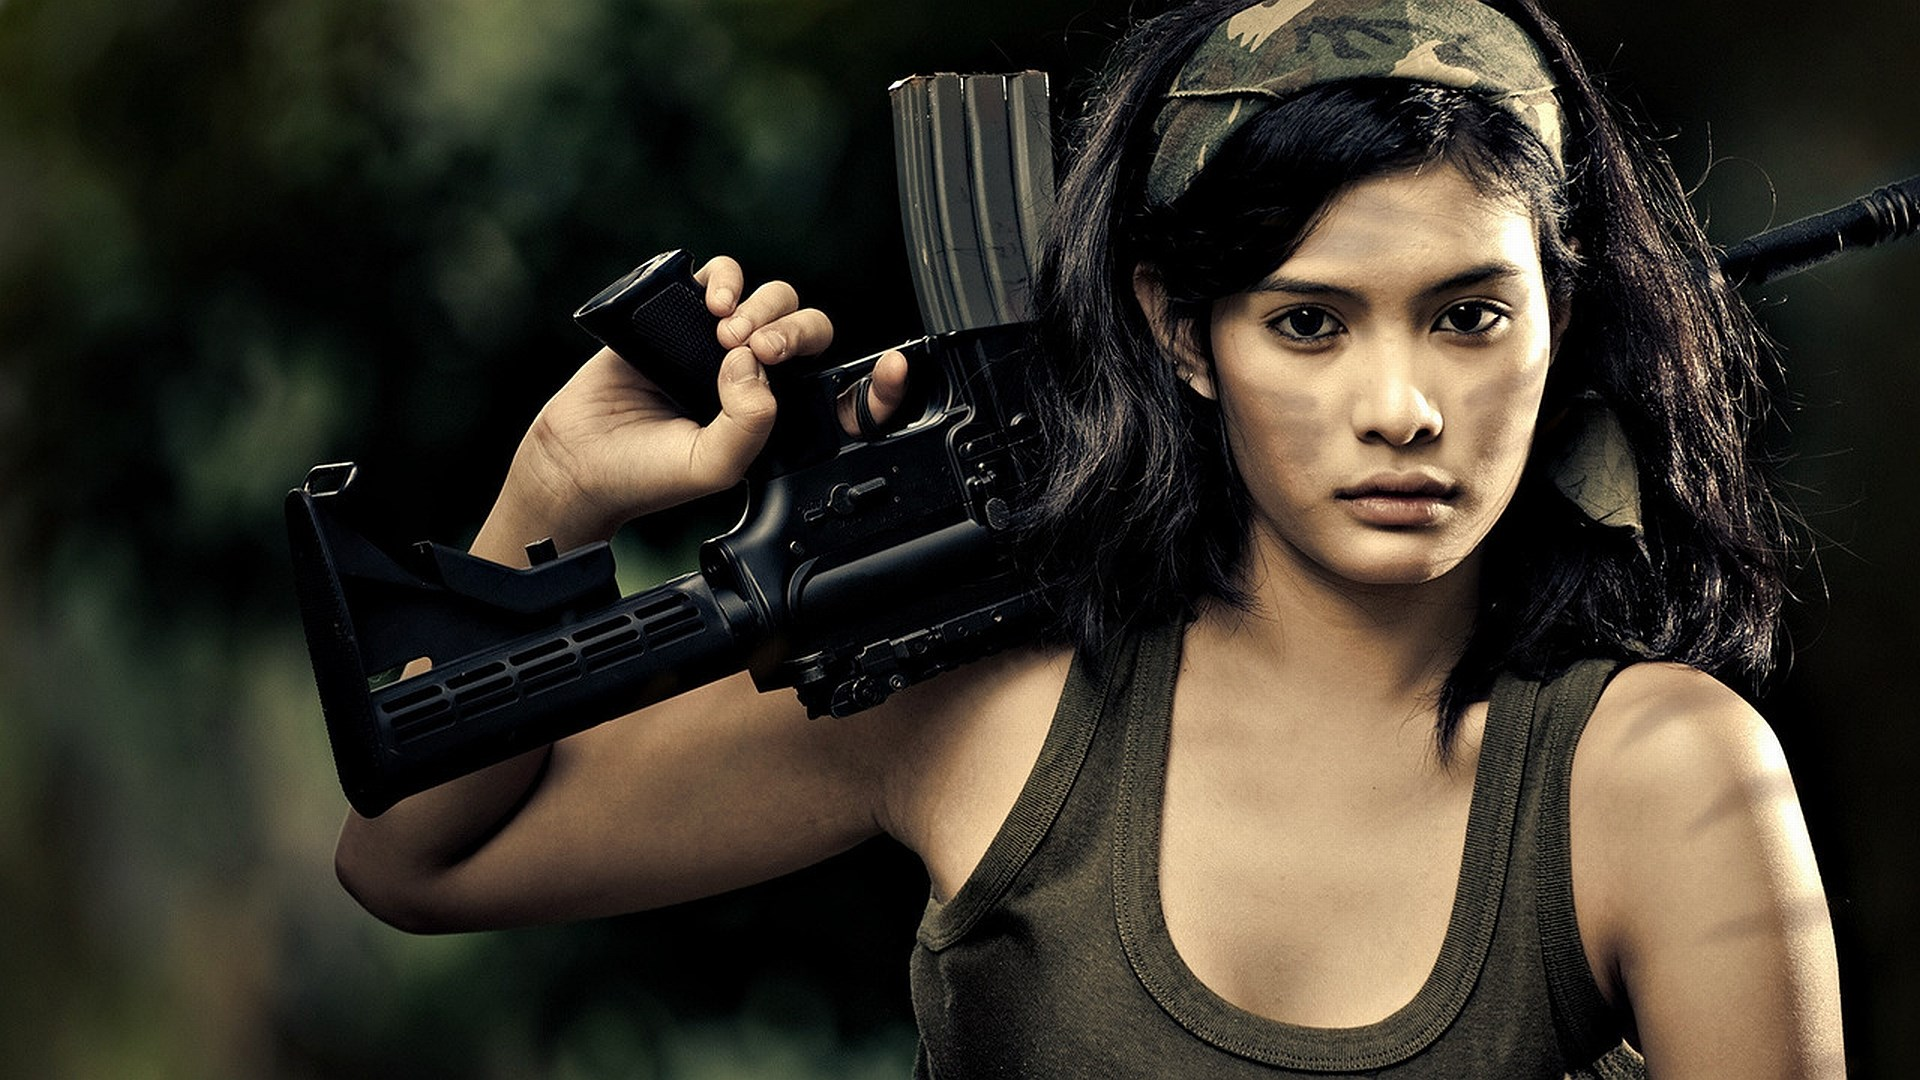 1920x1080-hd-girls-and-guns-wallpaper-wpc580825